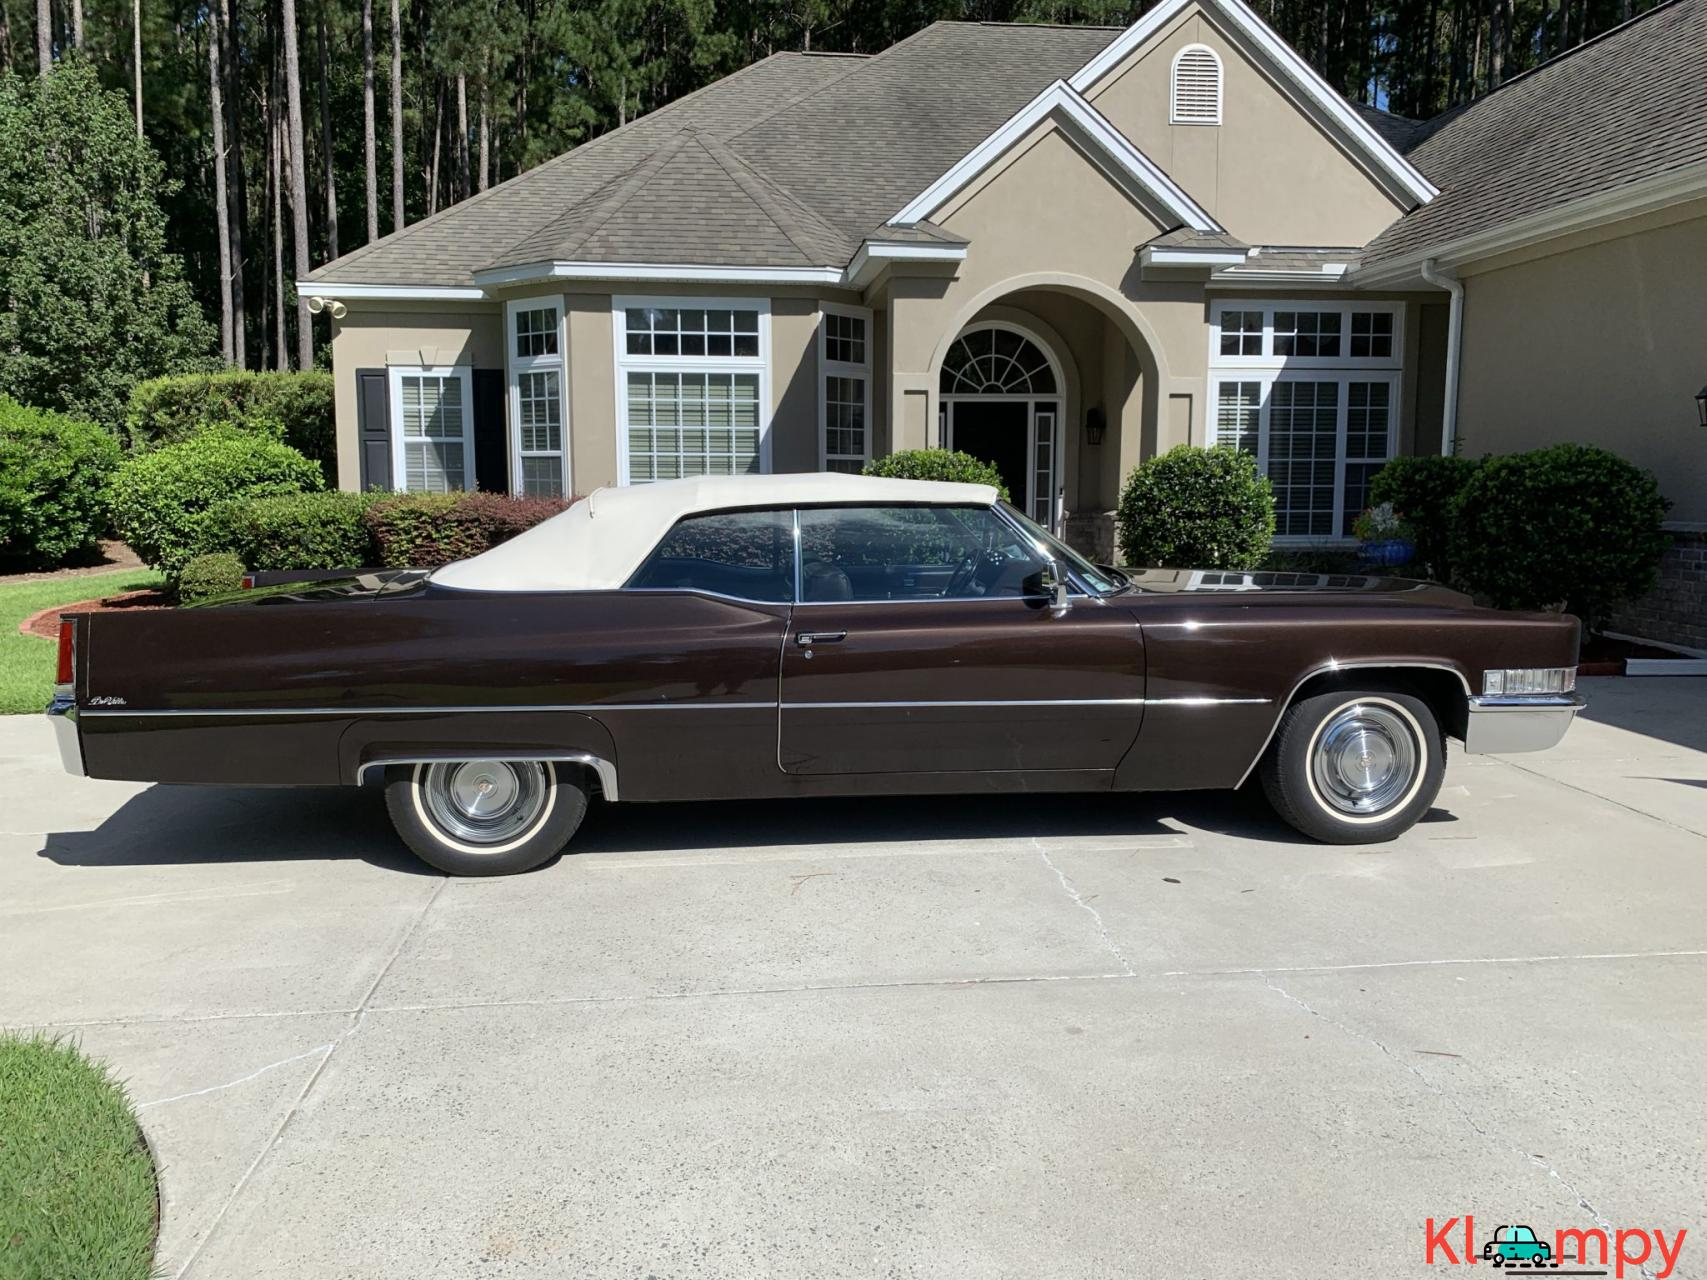 1969 Cadillac DeVille Convertible 472 3-Speed - 5/22